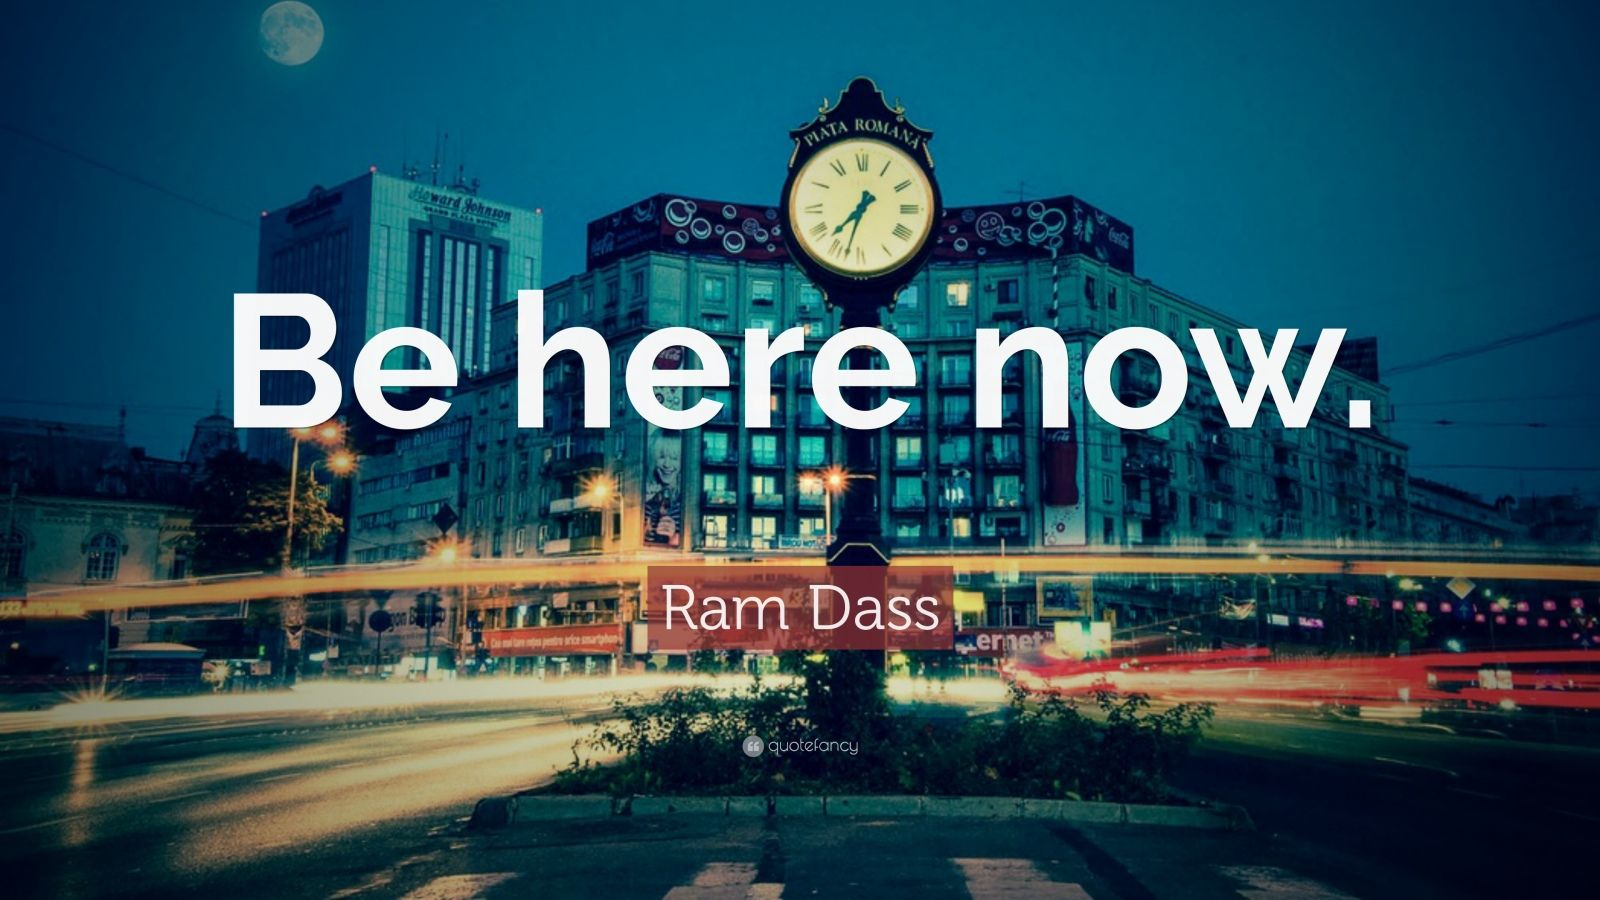 Images Of Inspiring Quotes Wallpaper Ram Dass Quote Be Here Now 26 Wallpapers Quotefancy